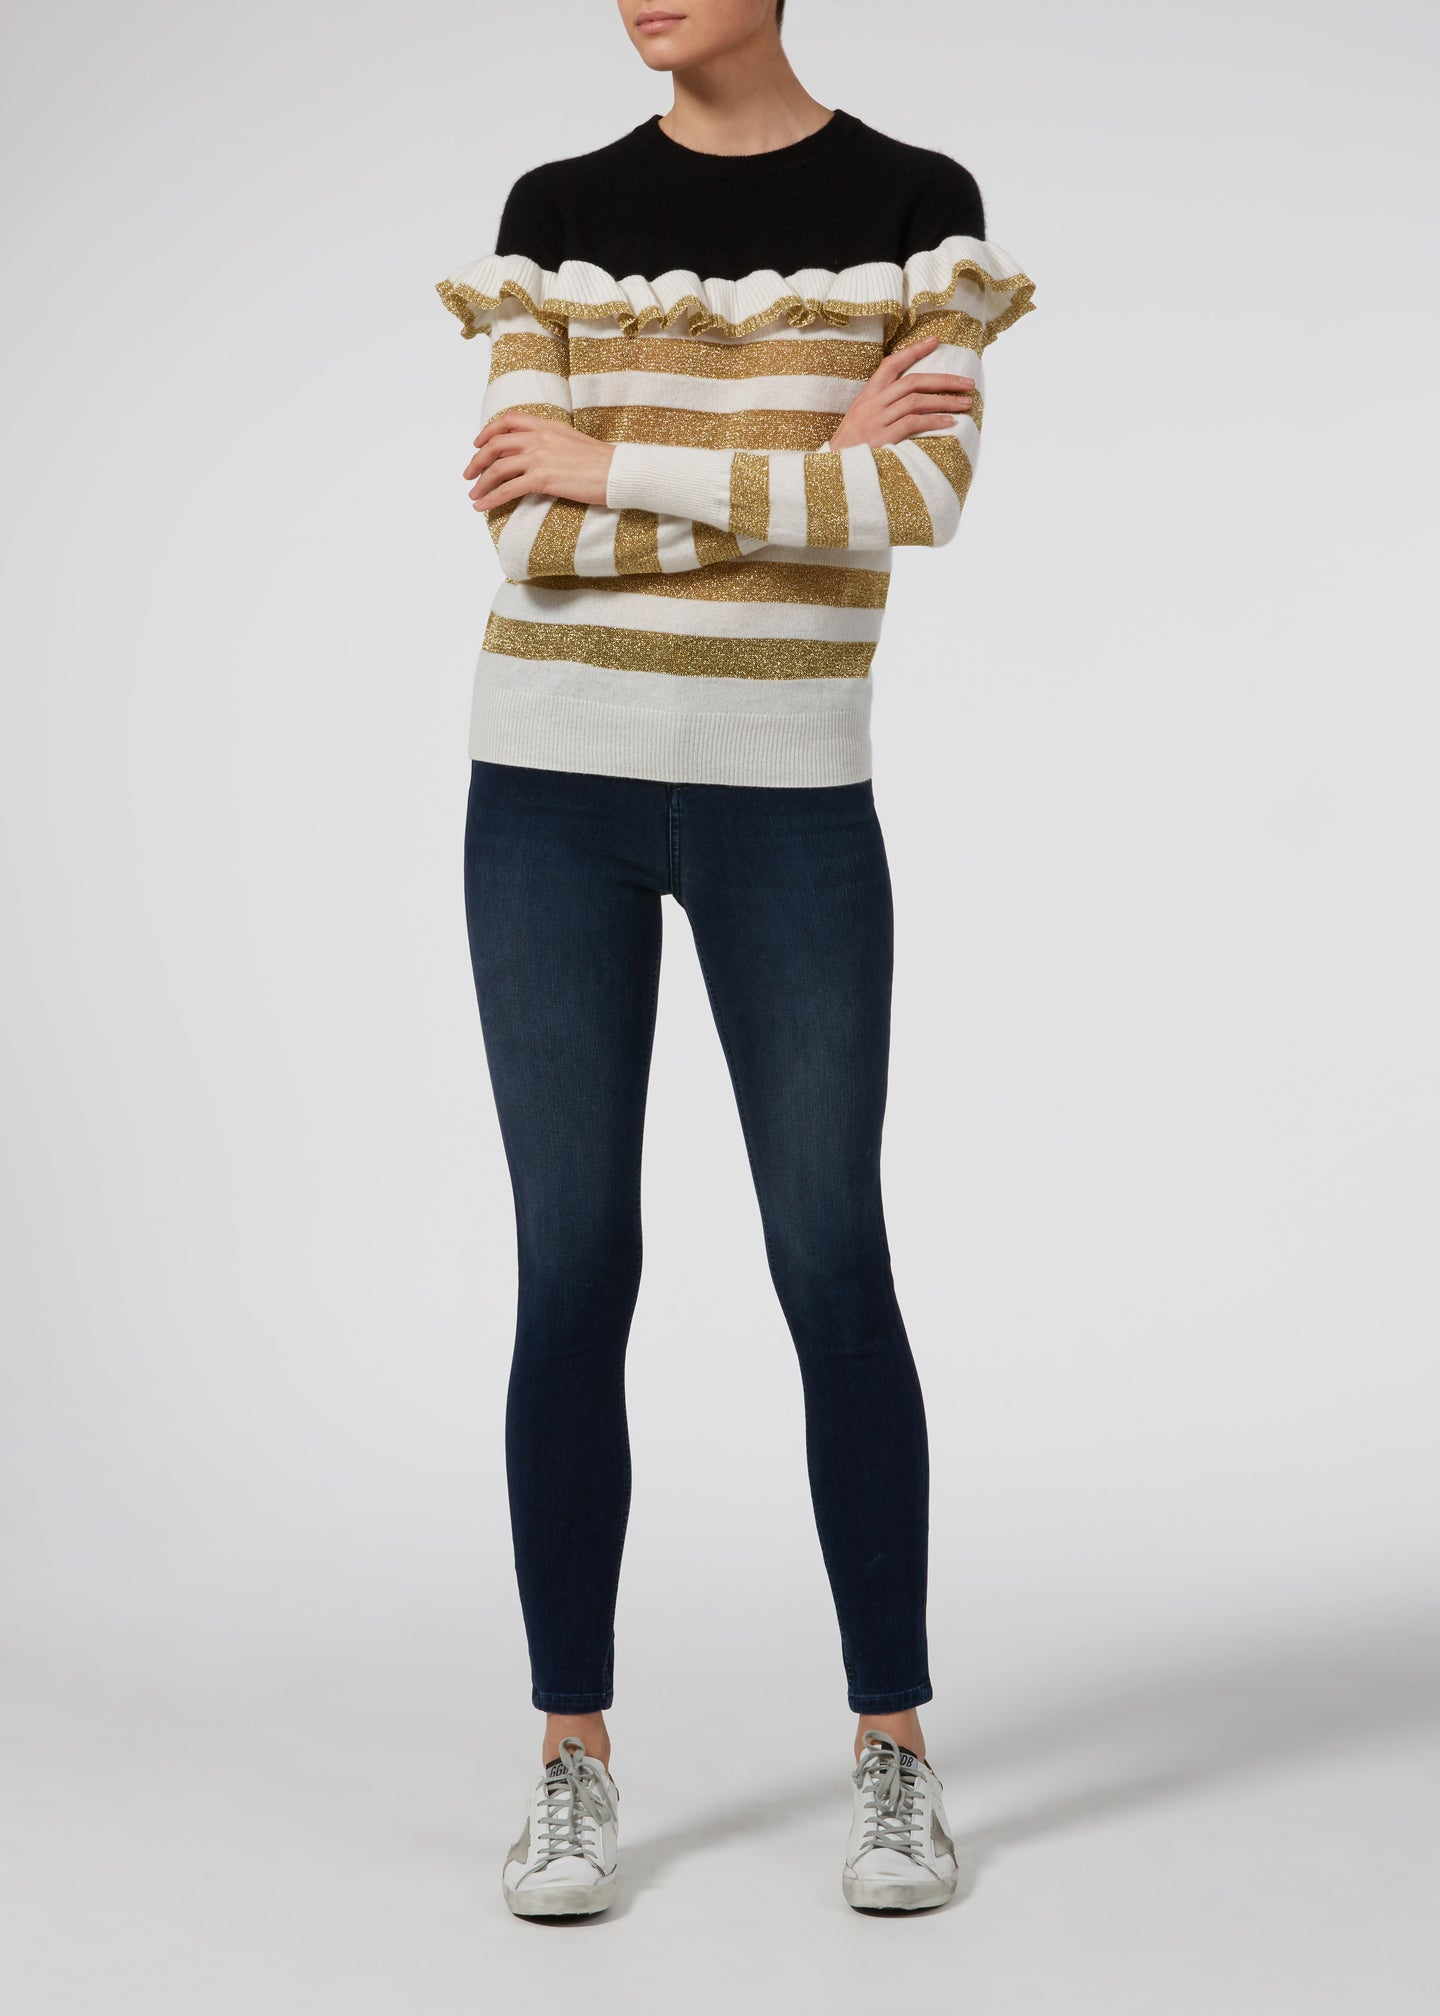 Friller Cashmere Knit - Posh Break